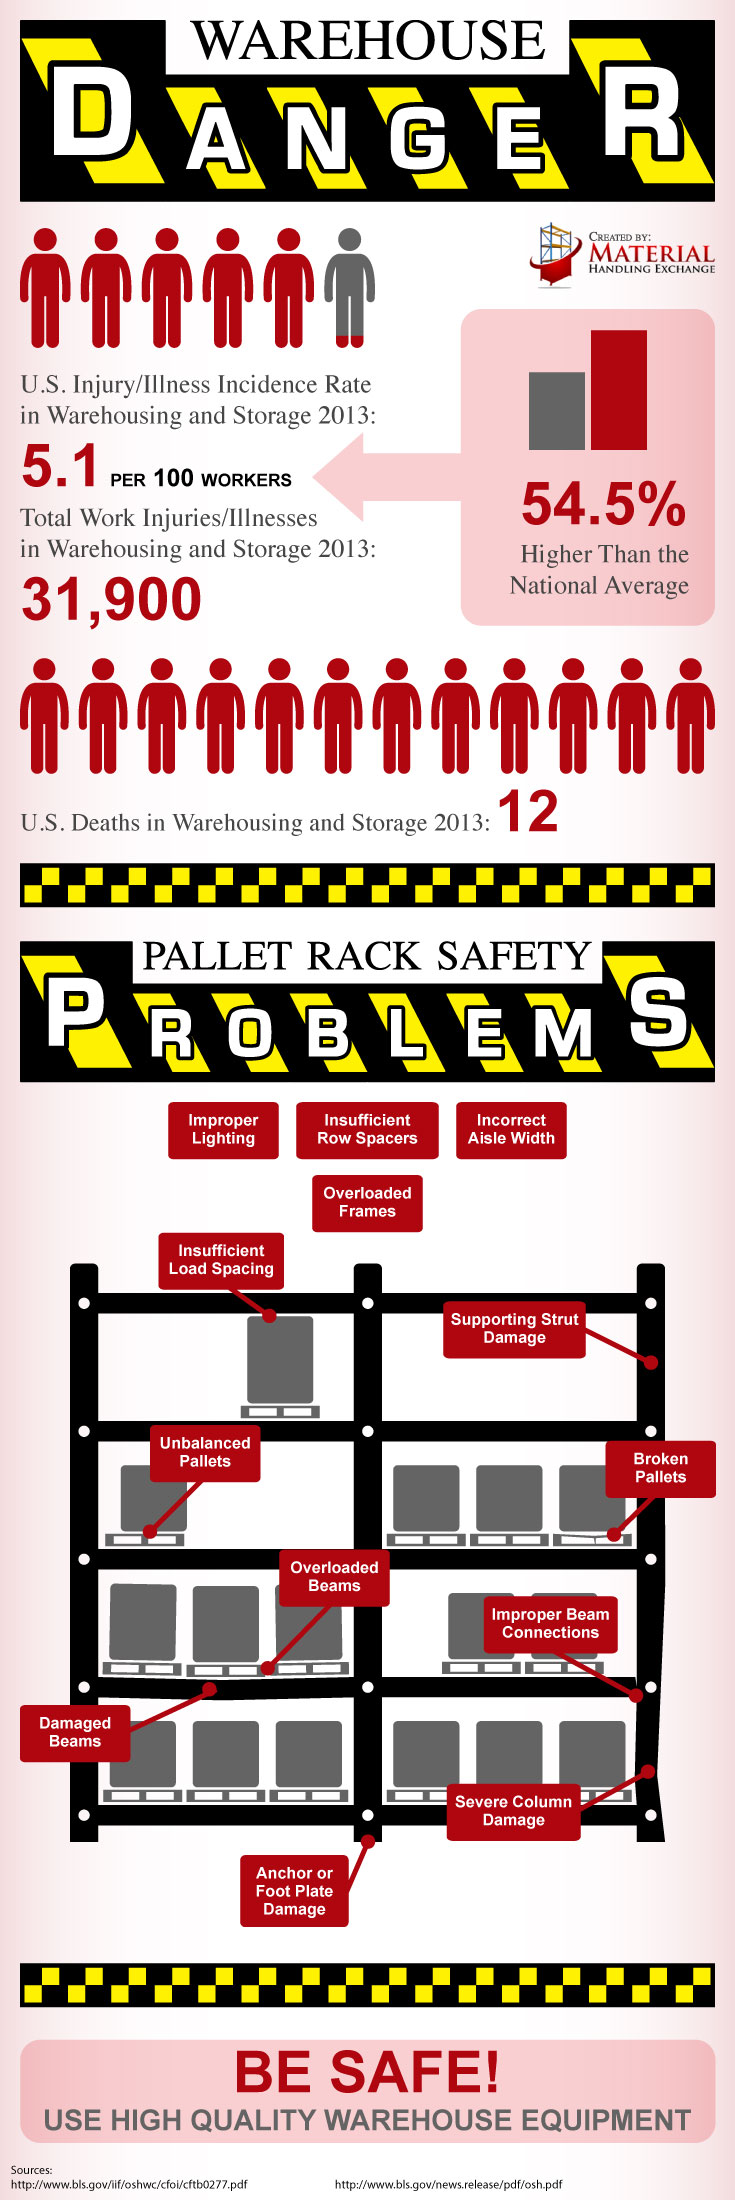 iinfographic-danger-pallet-racks